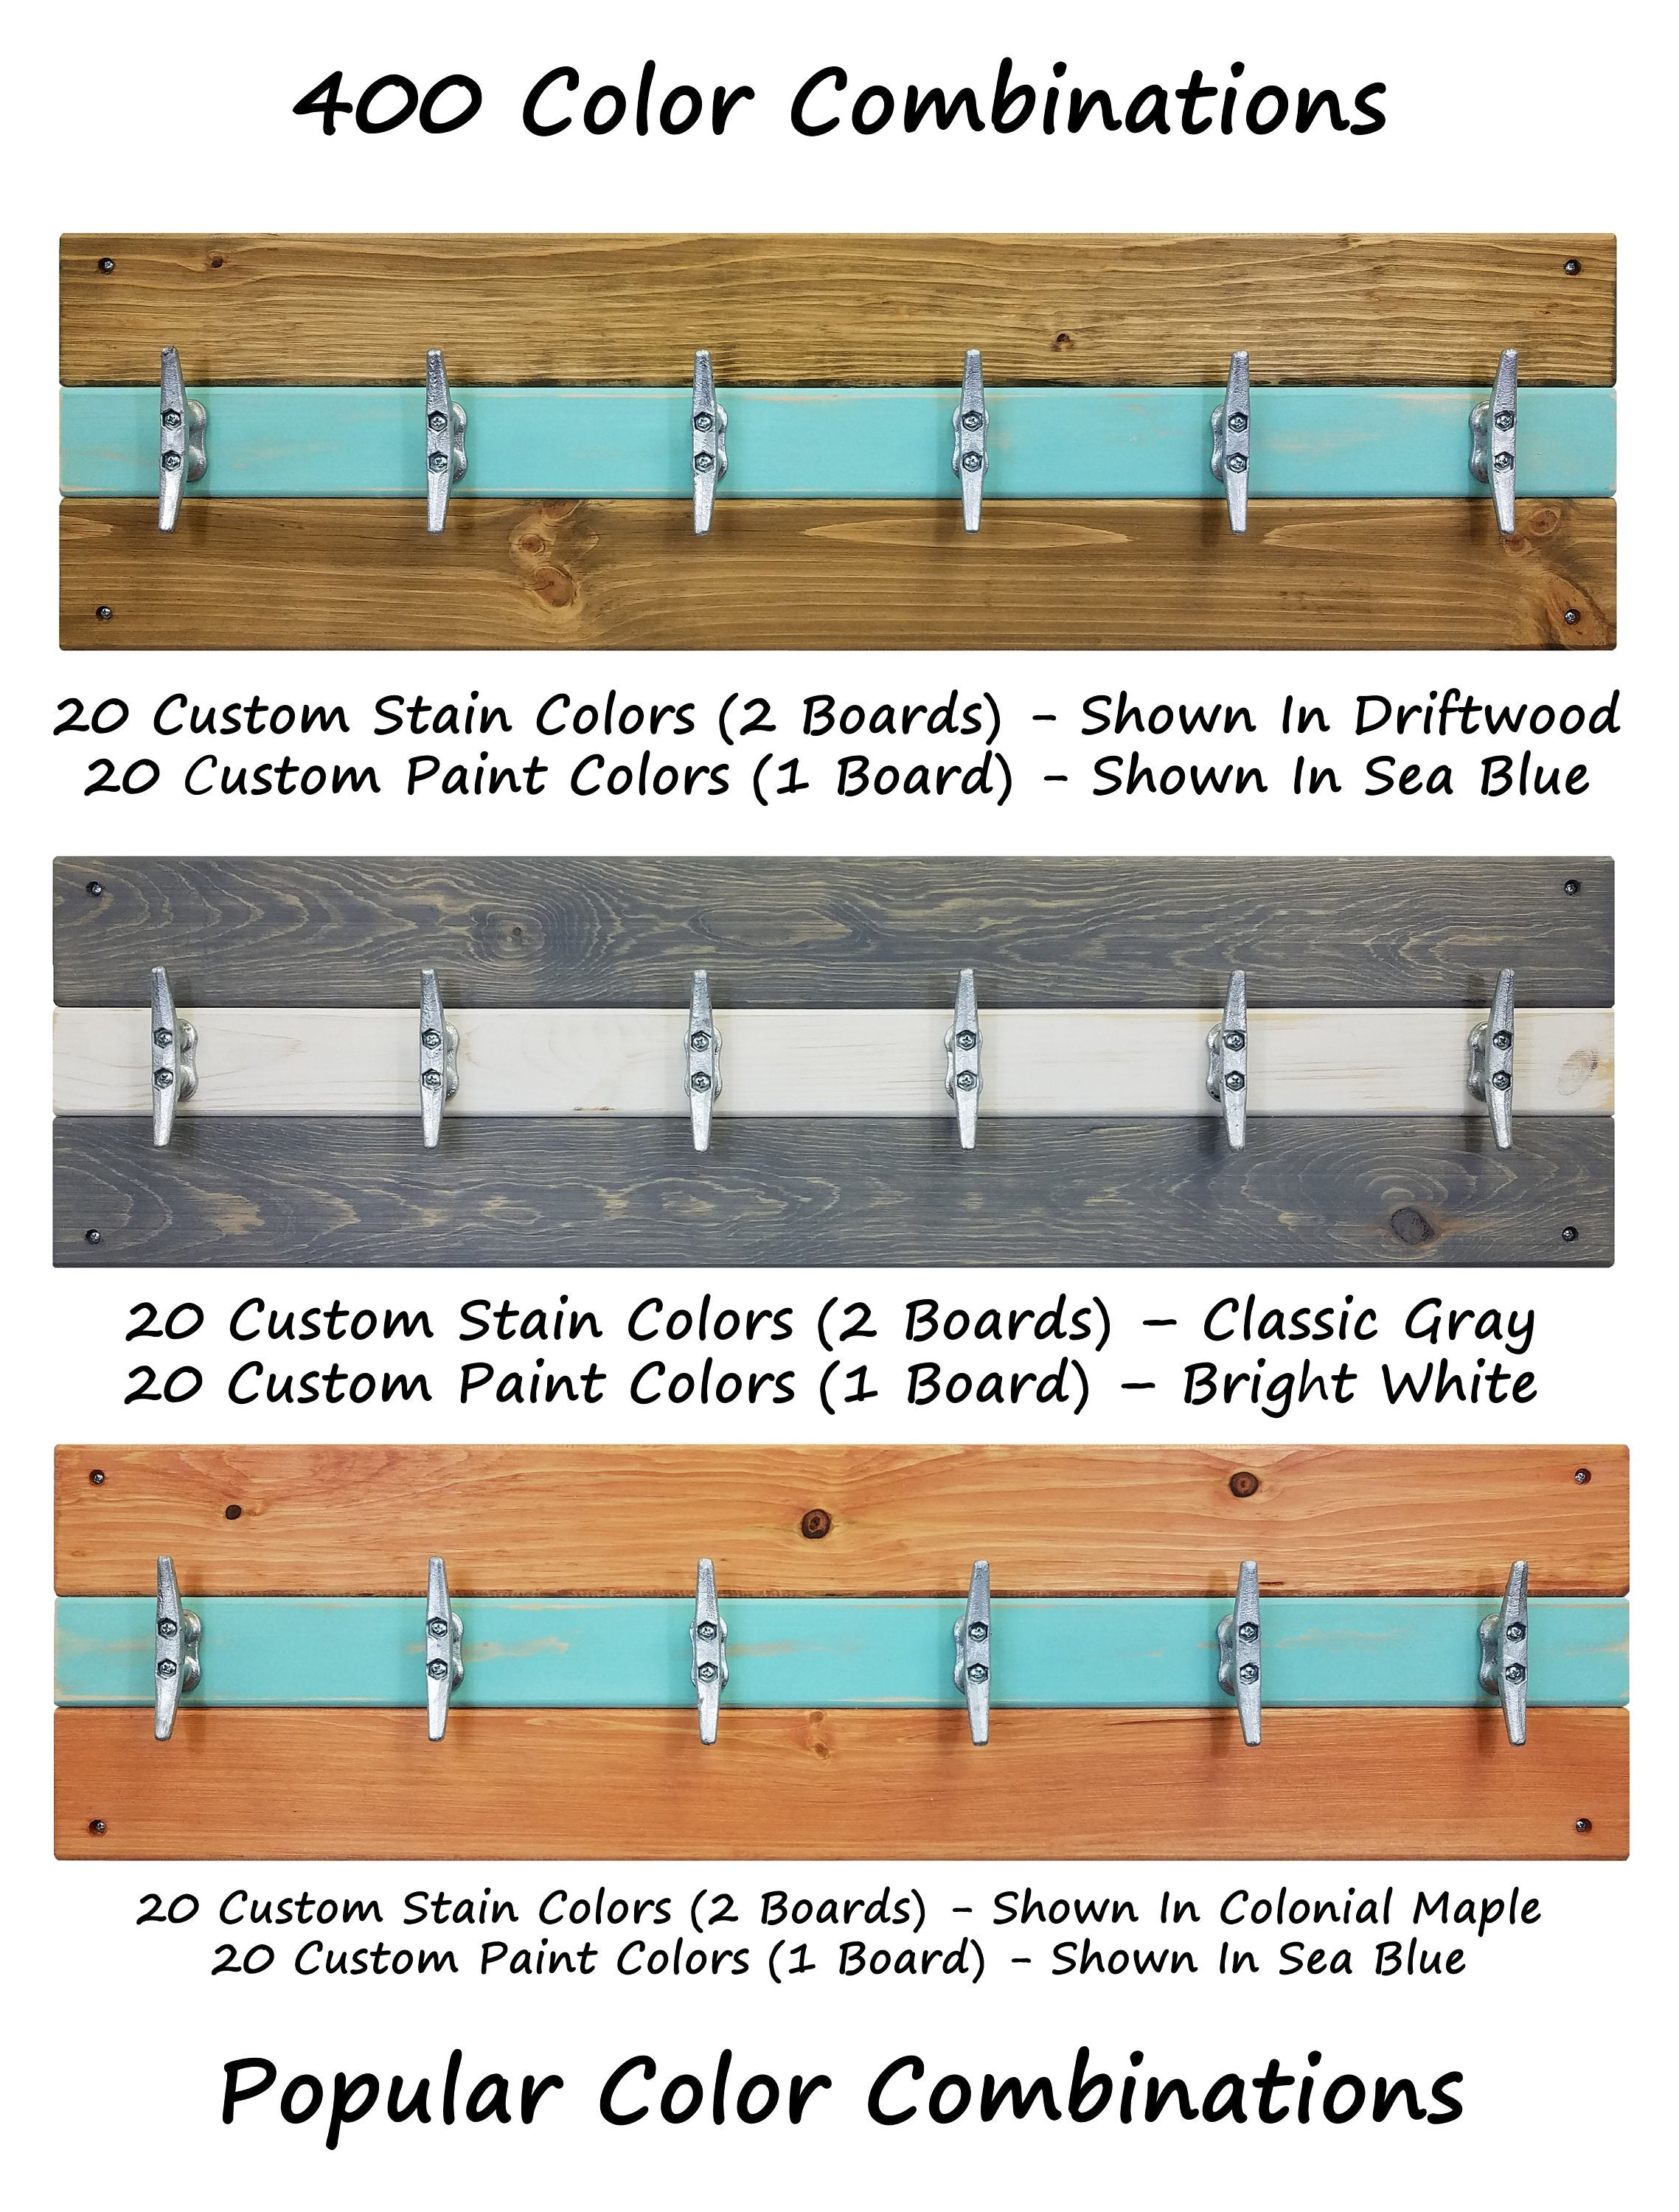 Cape May Boat Cleat Wall Hooks - 20 Stain Colors & 20 Accent Paint Colors - Renewed Decor & Storage